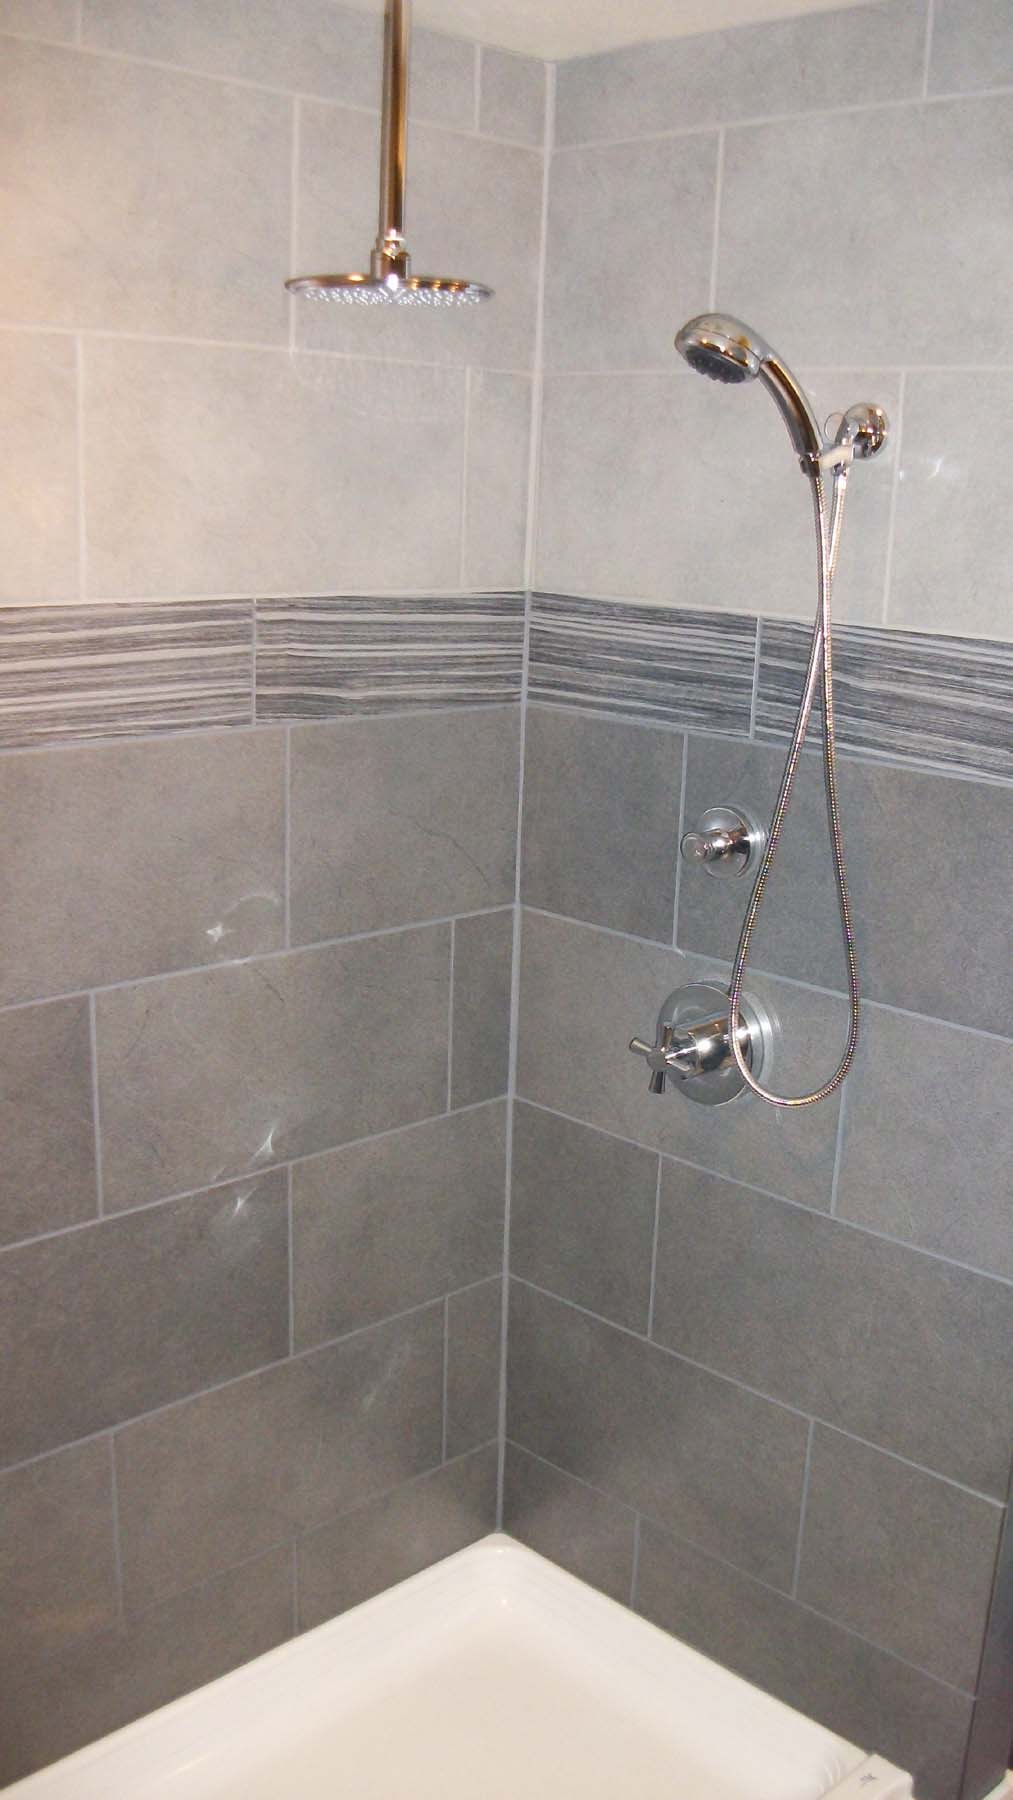 Wonderful shower tile and beautiful lavs notes from the Bathroom shower tile designs